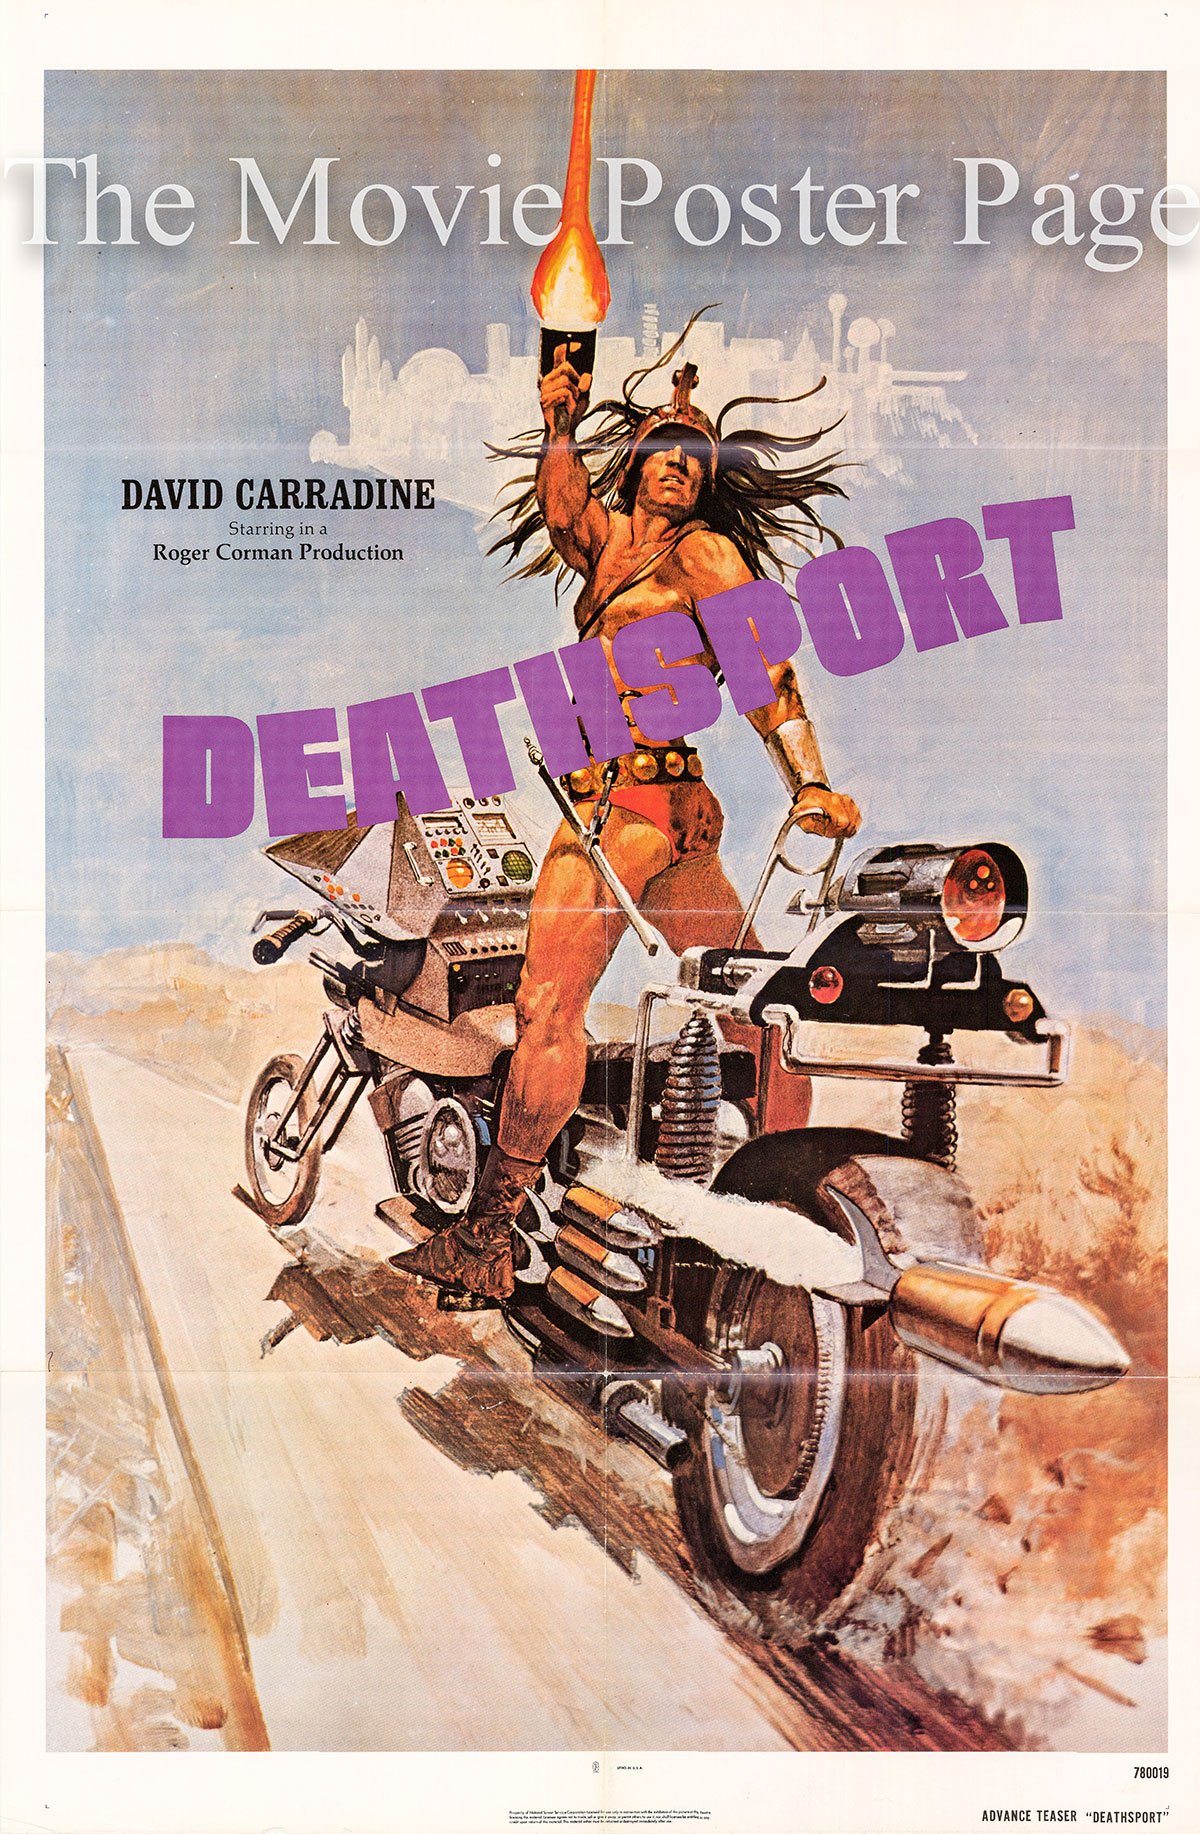 Pictured is a US teaser poster for the 1978 Roger Corman film Deathsport starring David Carradine as Kaz Oshay.